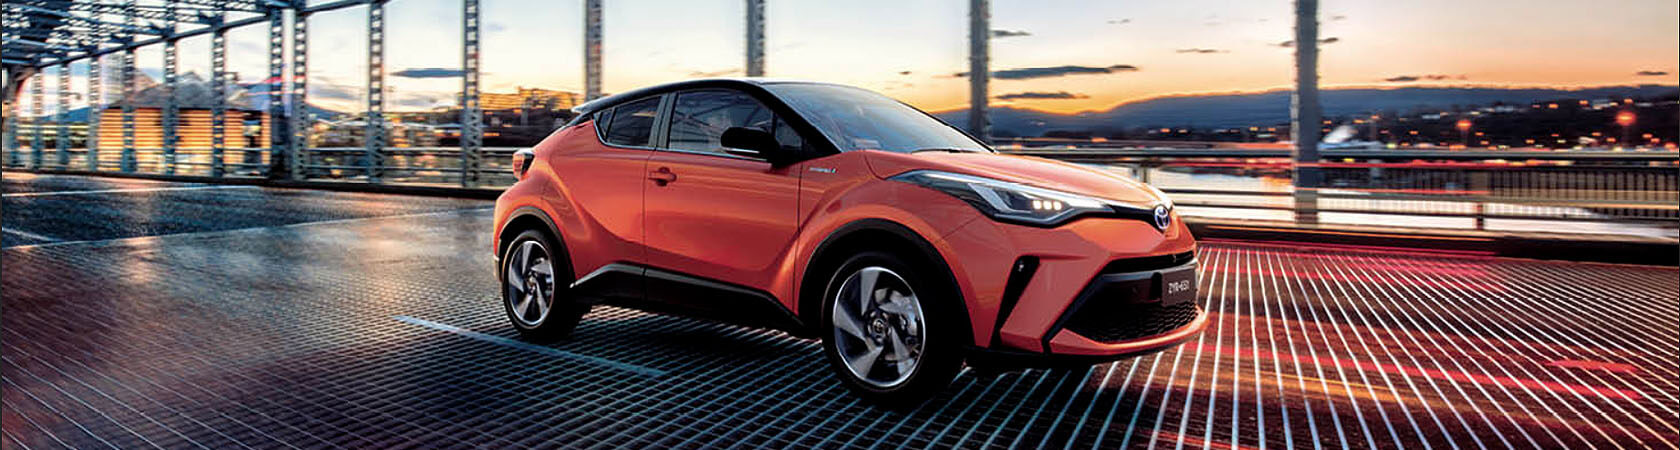 Big Rock Toyota C-HR